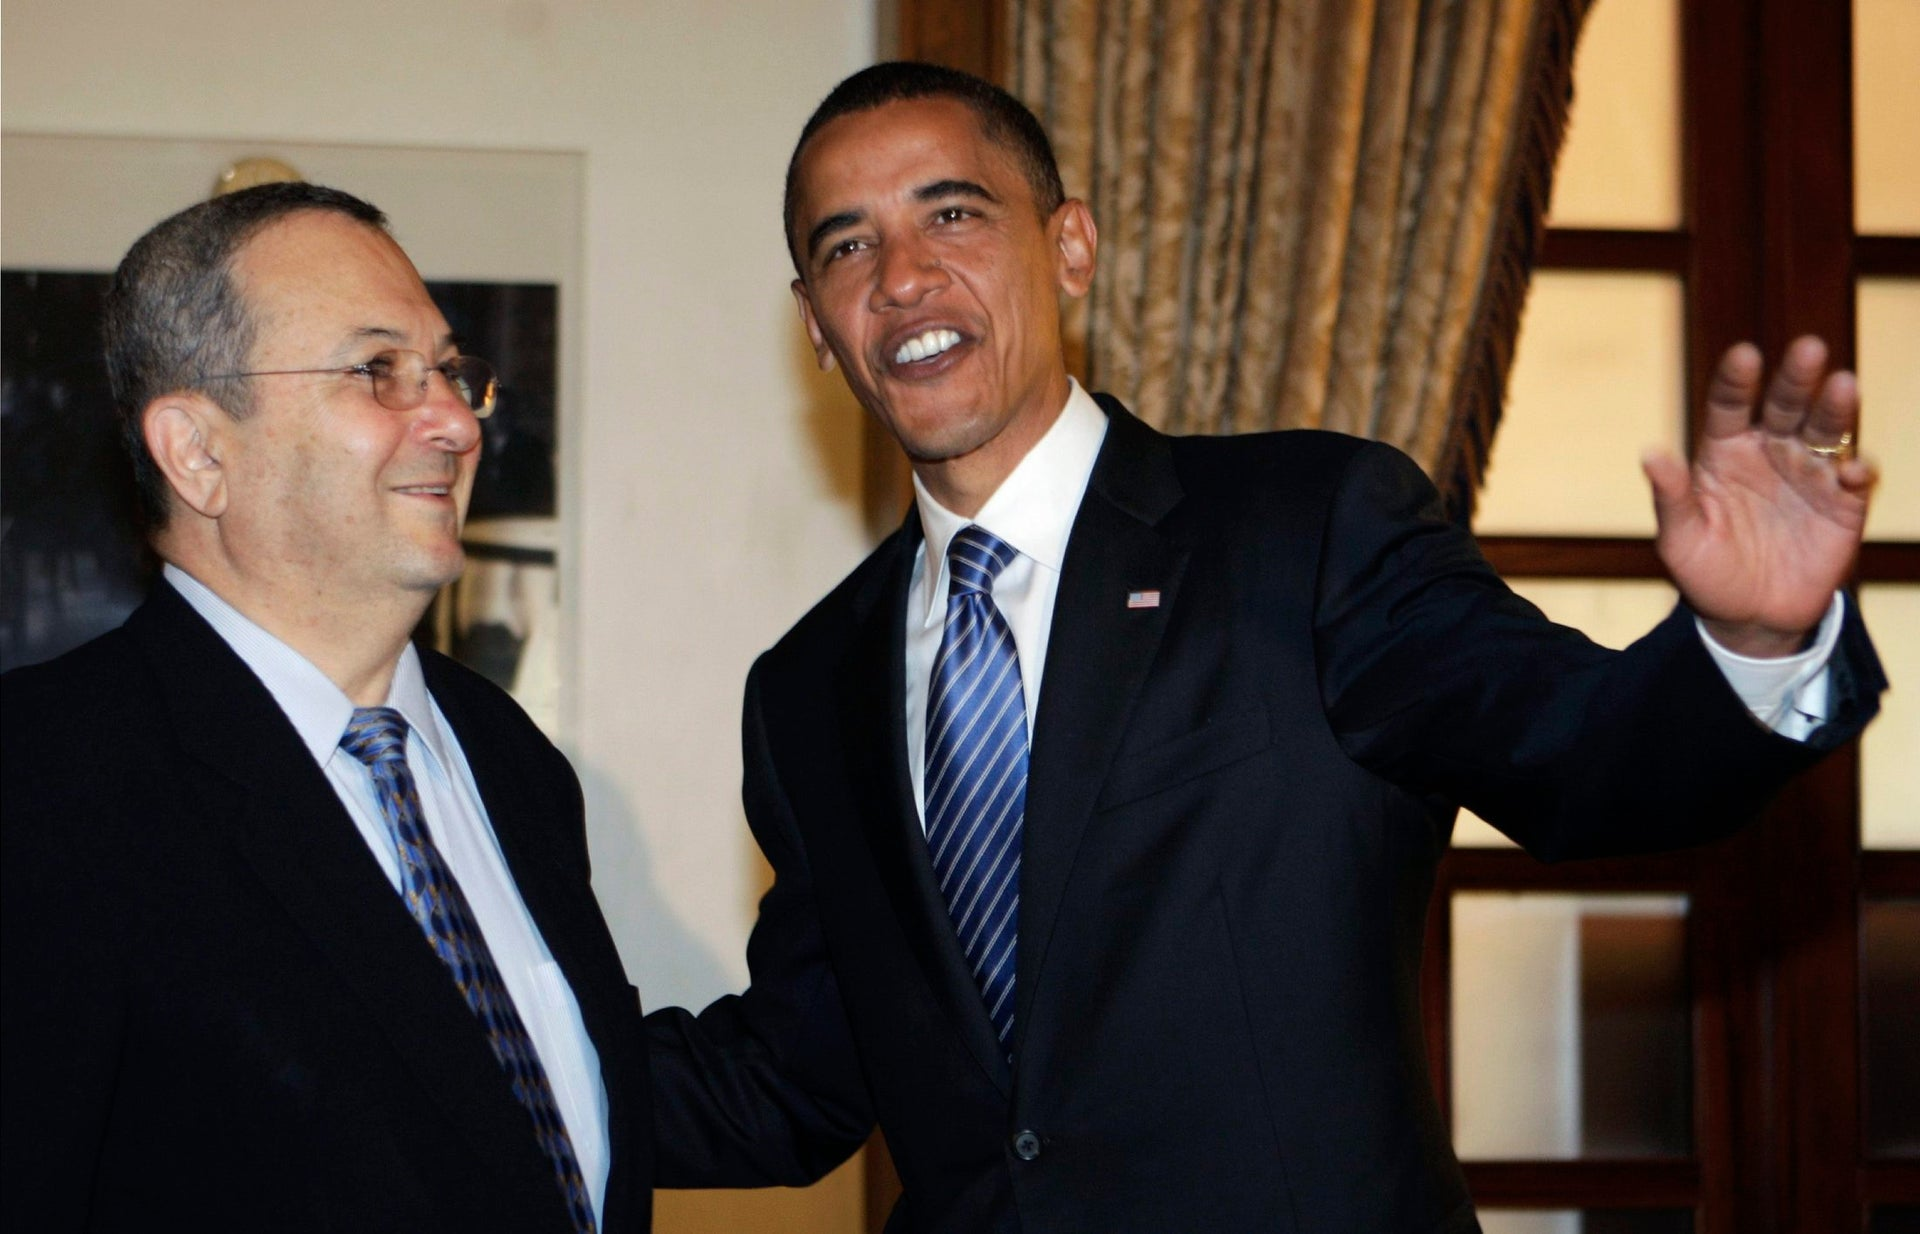 US Democratic presidential contender Barack Obama, right, gestures as he stands with Israeli Defense Minister Ehud Barak, during their meeting at the King David Hotel in Jerusalem, Wednesday, July 23, 2008. Democratic presidential hopeful Barack Obama pledged Wednesday that as president he would preserve the close ties between the United States and Israel, and that the Jewish state's security would be a top priority in his administration. (AP Photo/Eliana Aponte, Pool)